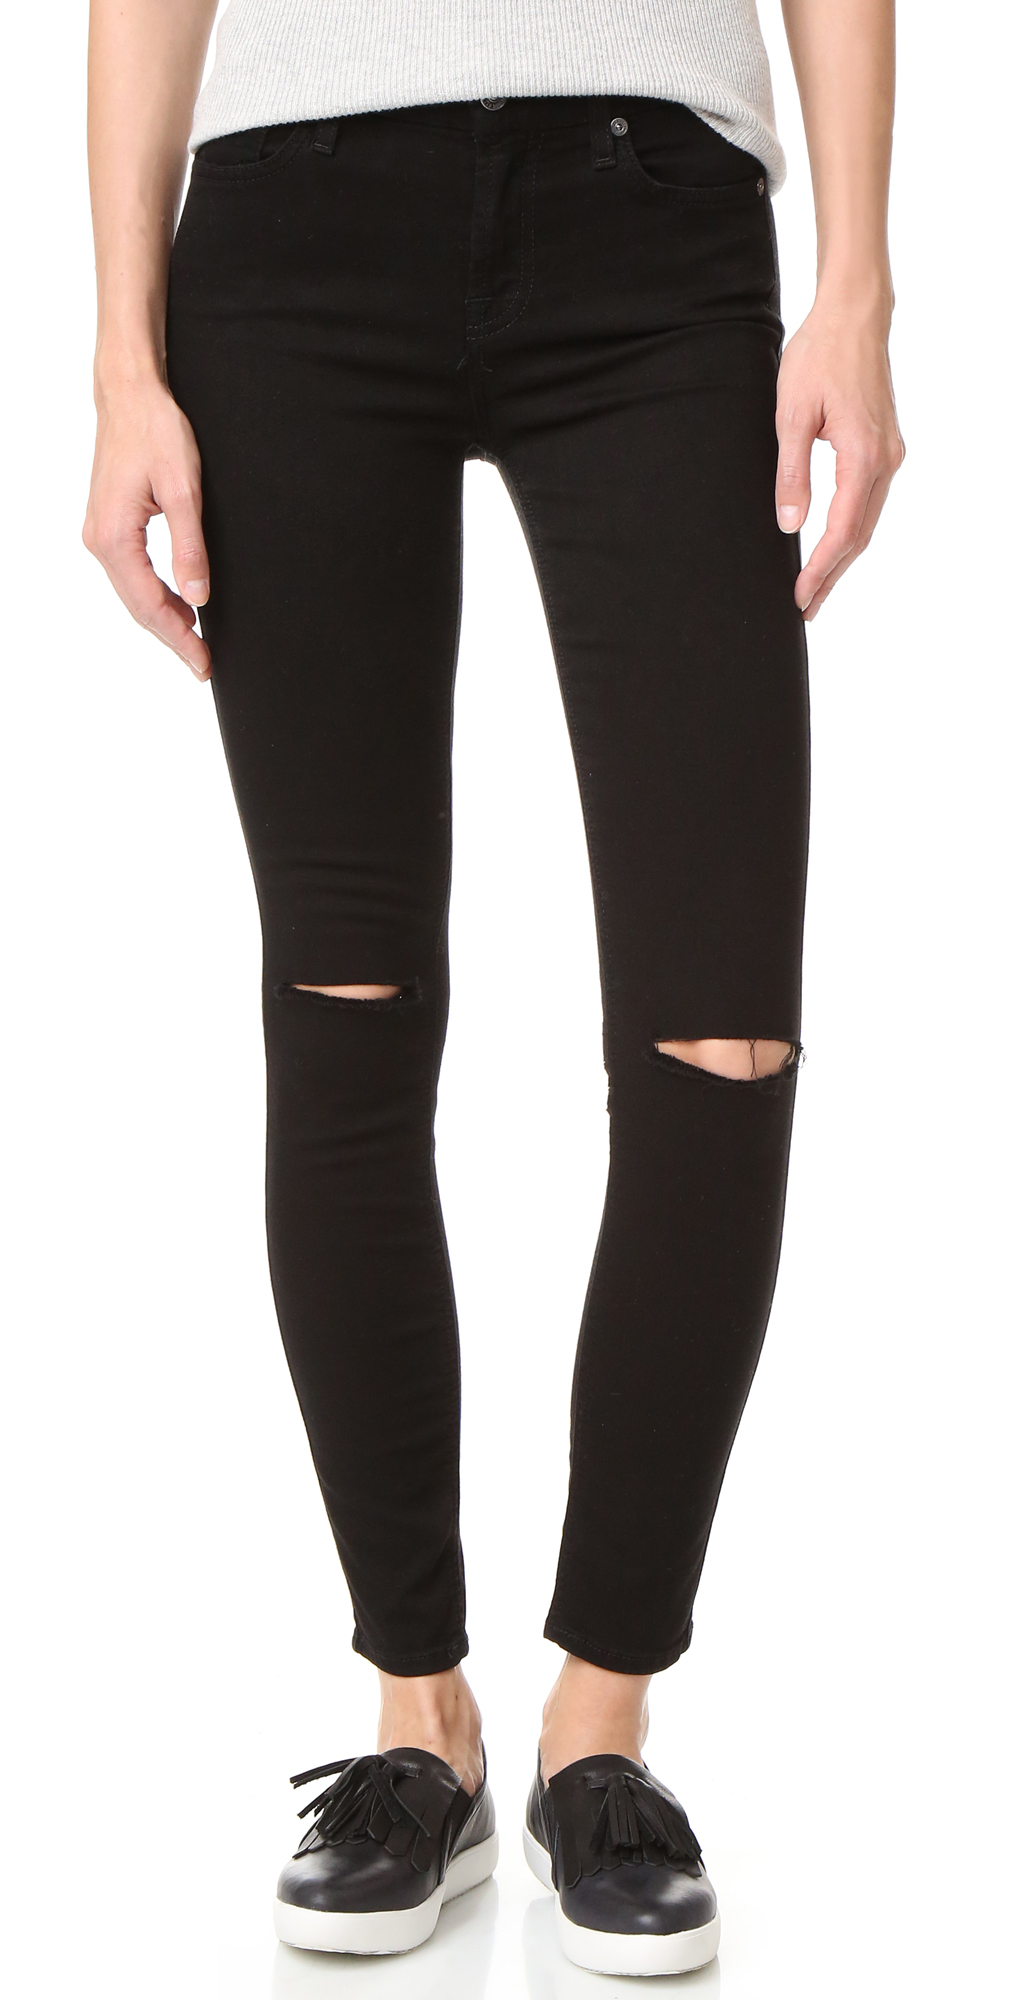 b(air) Ankle Skinny Jeans 7 For All Mankind